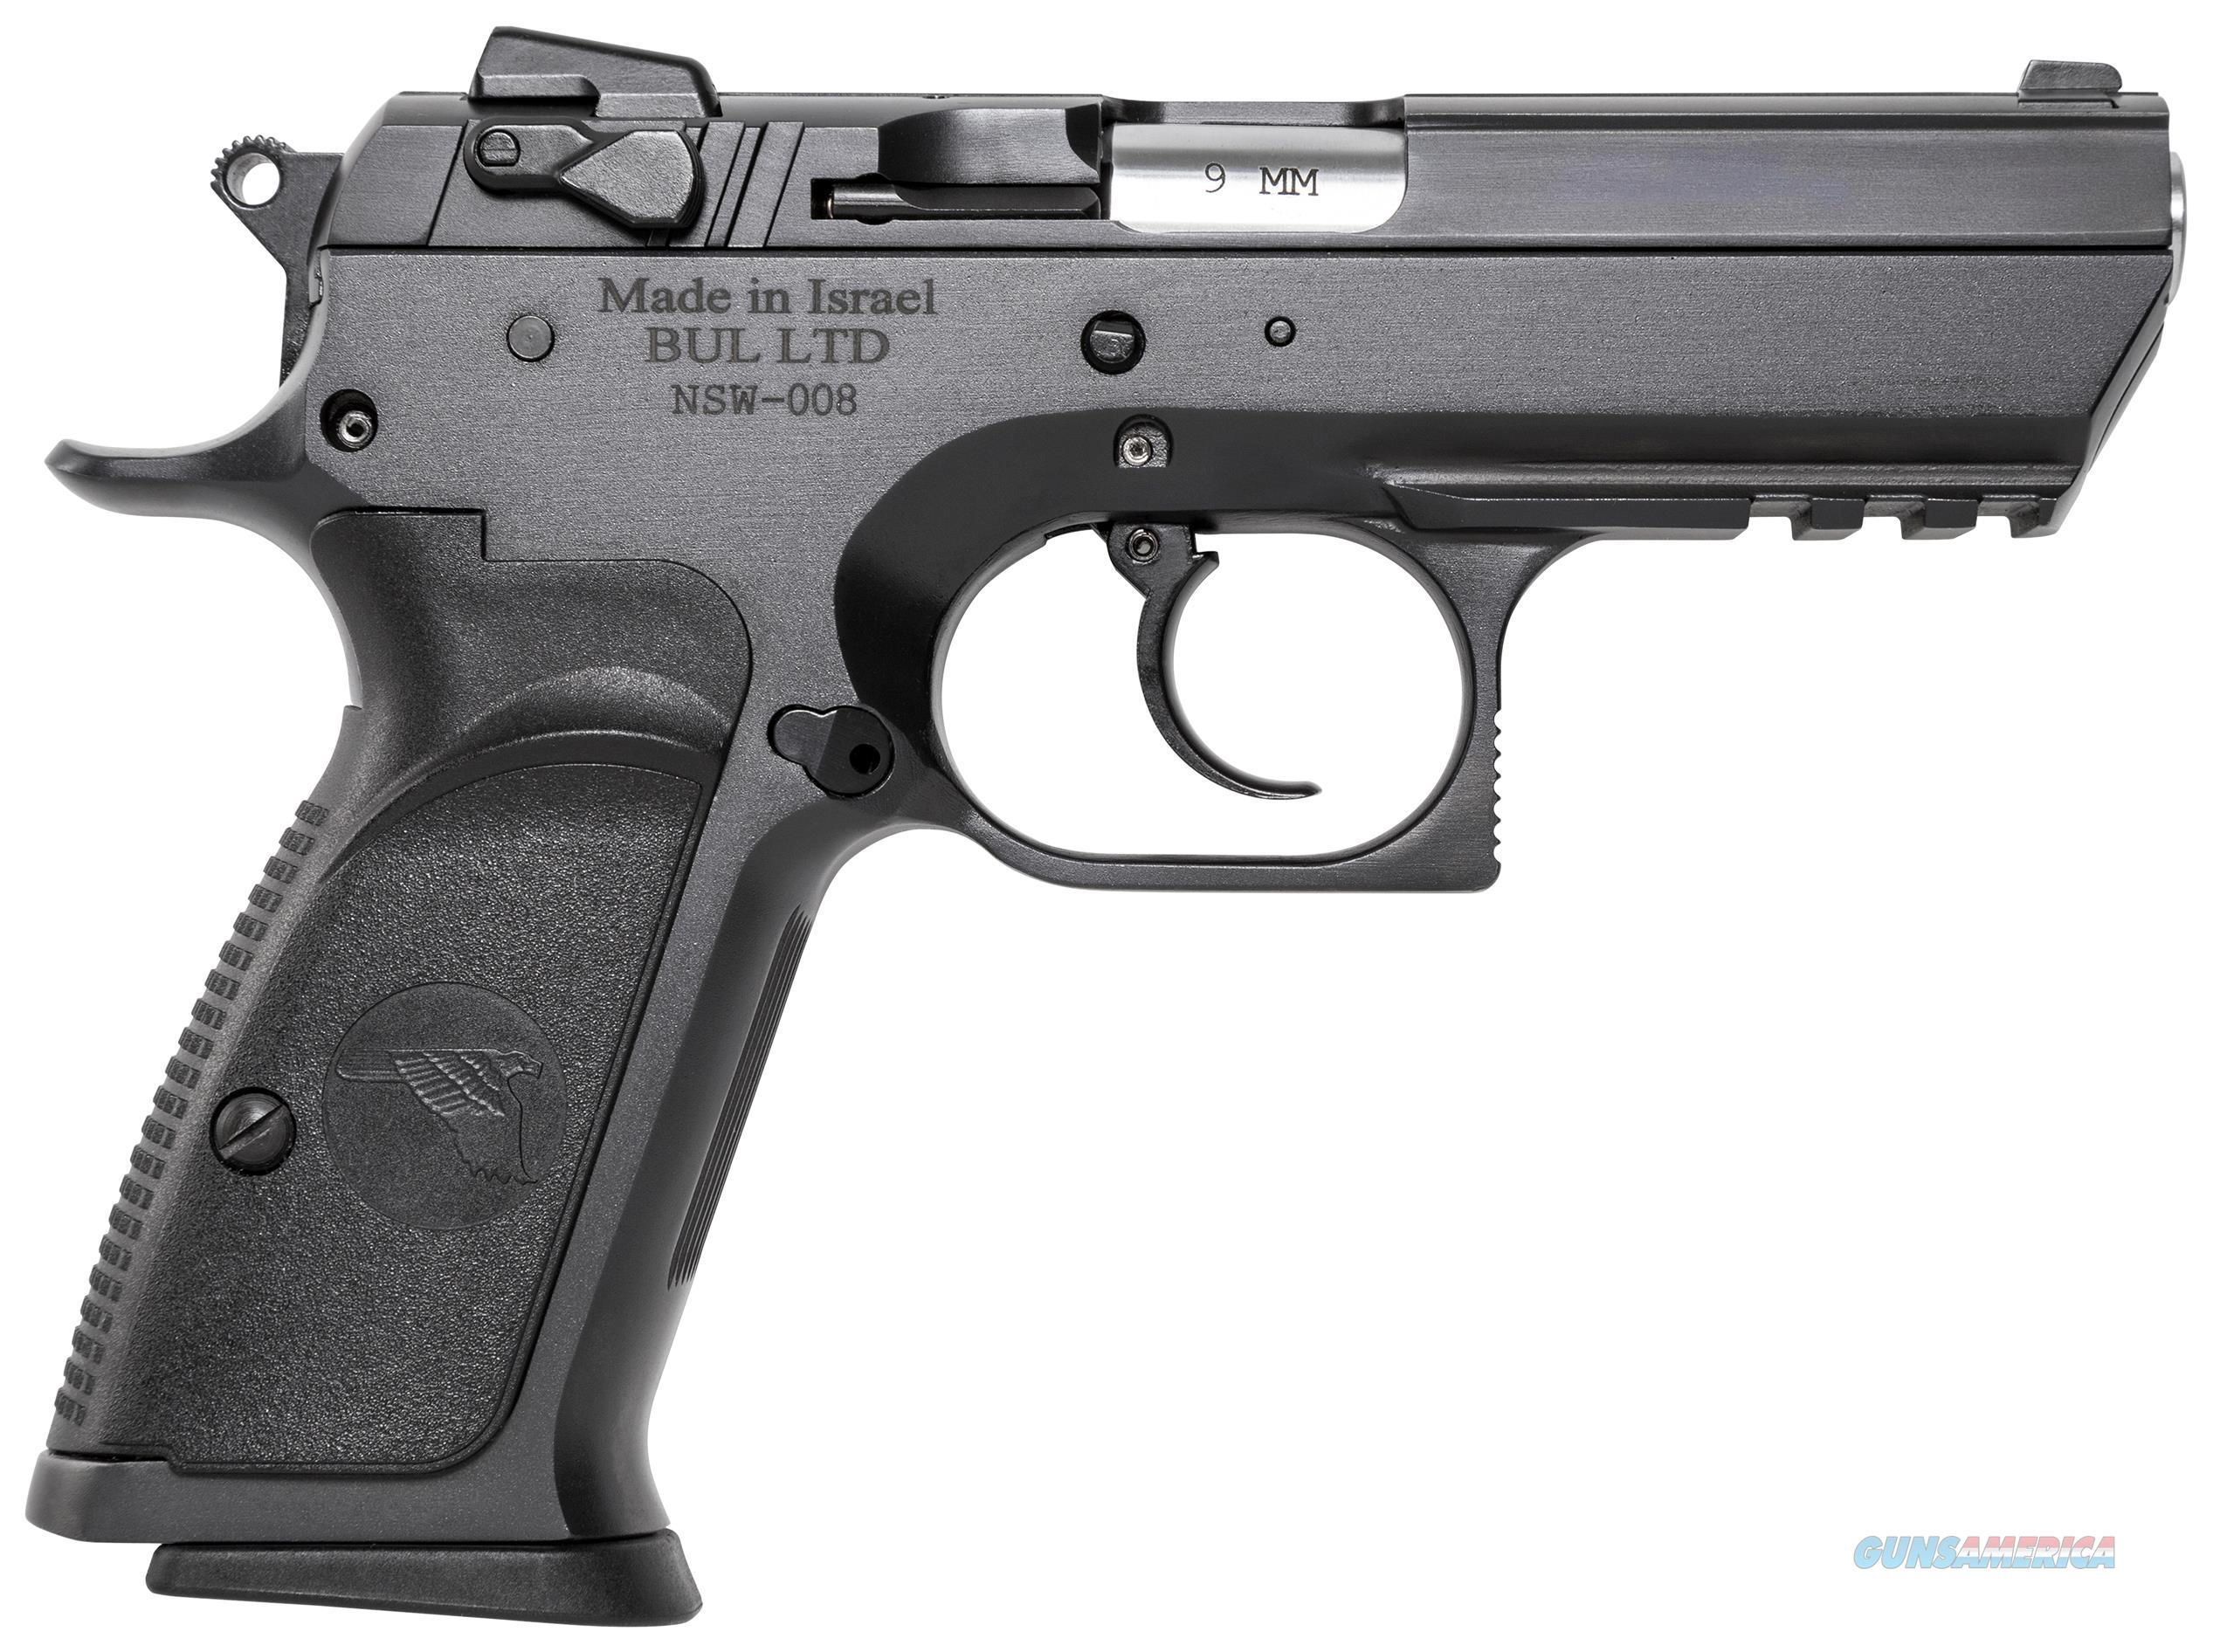 "Magnum Research Be45003rs Baby Desert Eagle Single/Double 45 Automatic Colt Pistol (Acp) 3.8"" 10+1 Blk Carbon Steel BE45003RS  Guns > Pistols > Magnum Research Pistols"